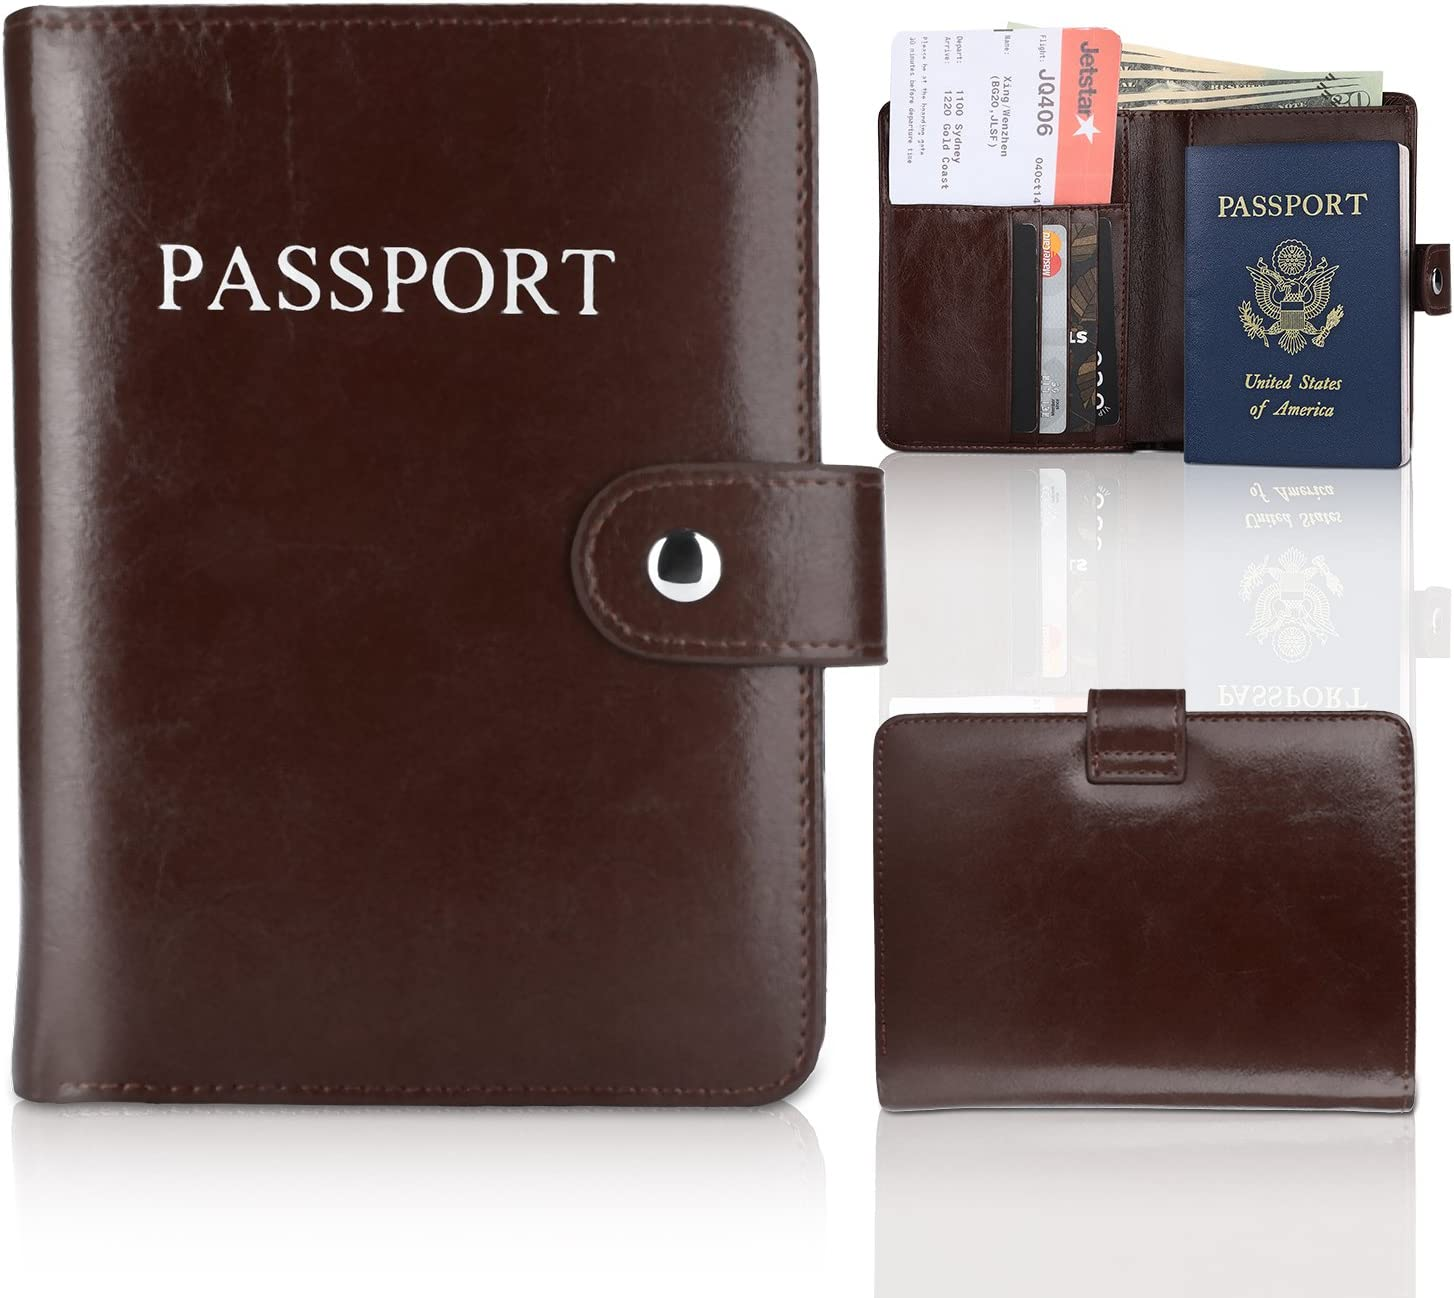 YOOMALL Leather Passport Holder Cover RFID Blocking Travel Wallet ID Card Case Document Organizer